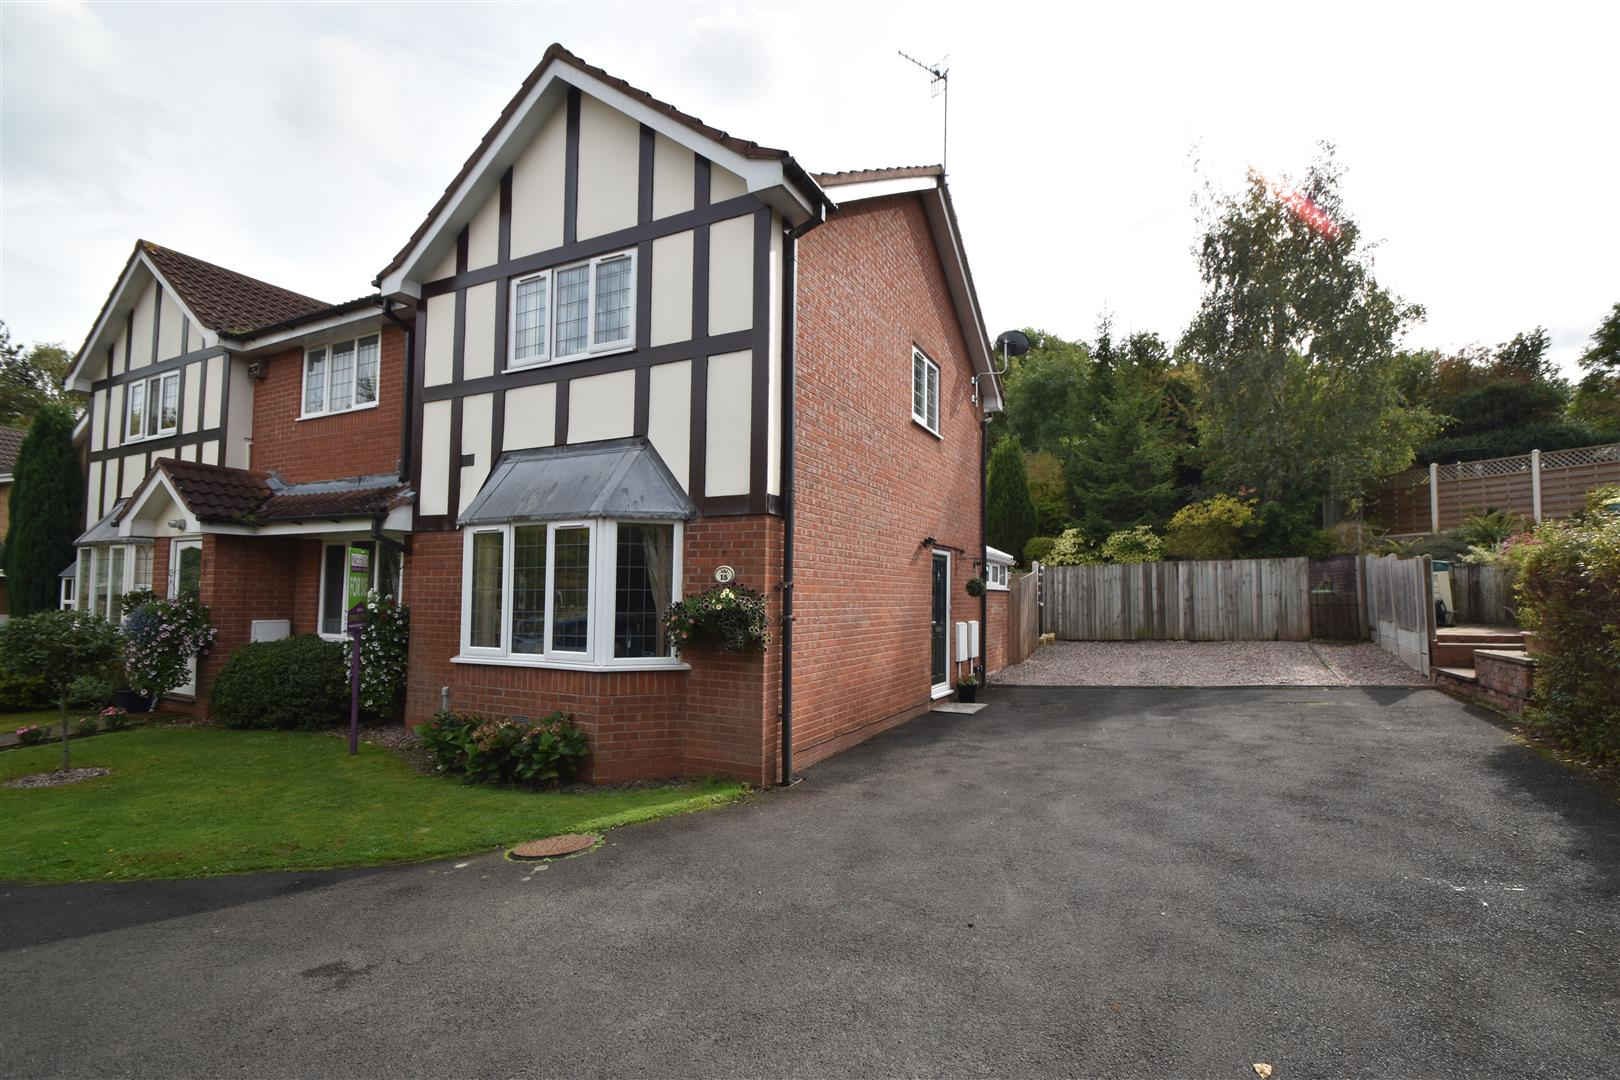 2 Bedrooms End Of Terrace House for sale in Tagwell Close, Droitwich